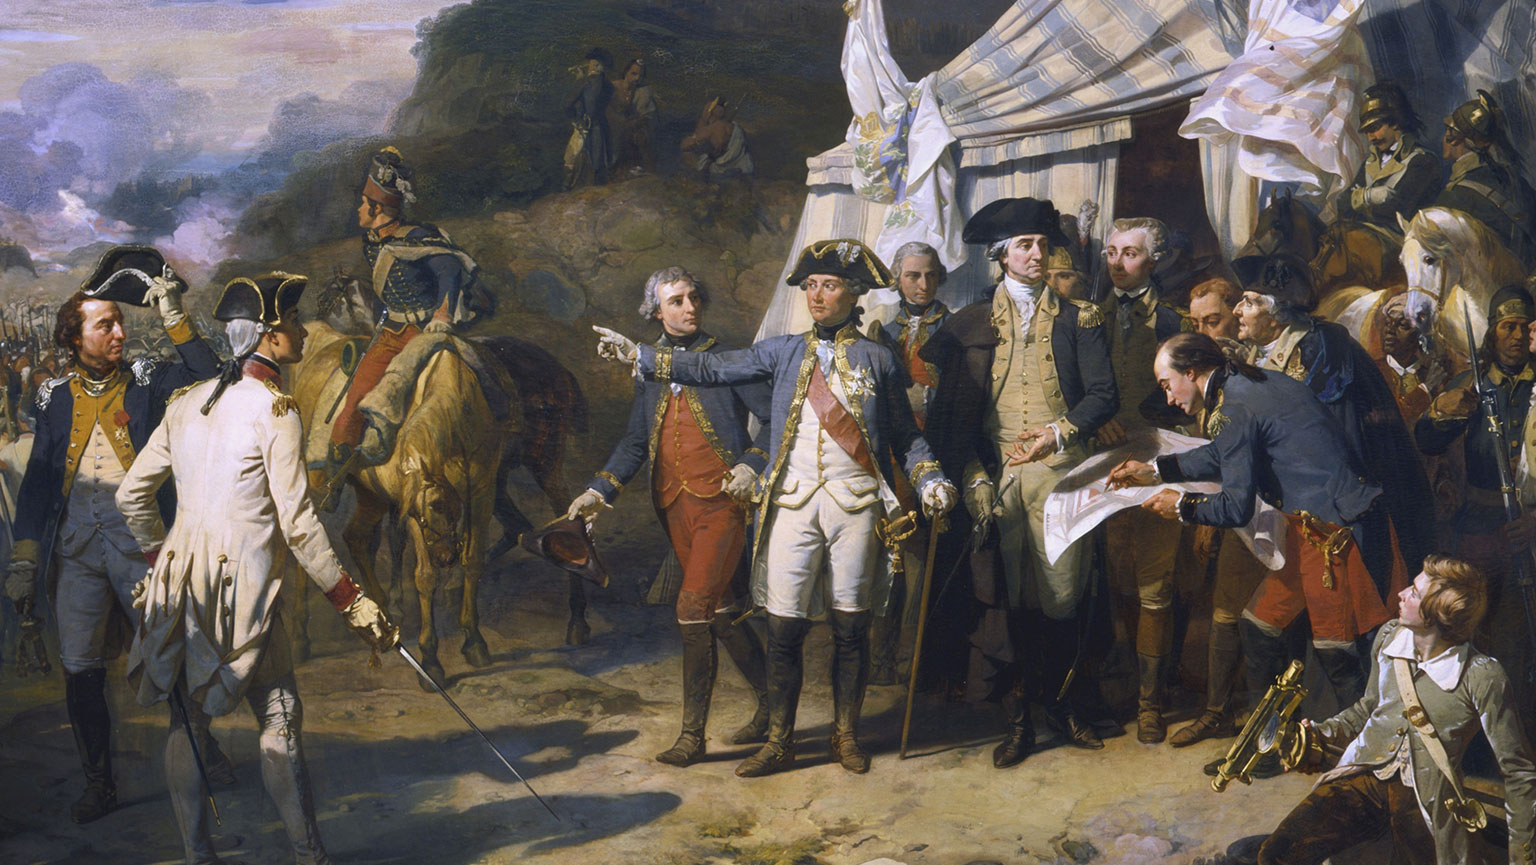 The American Revolution—Washington's War